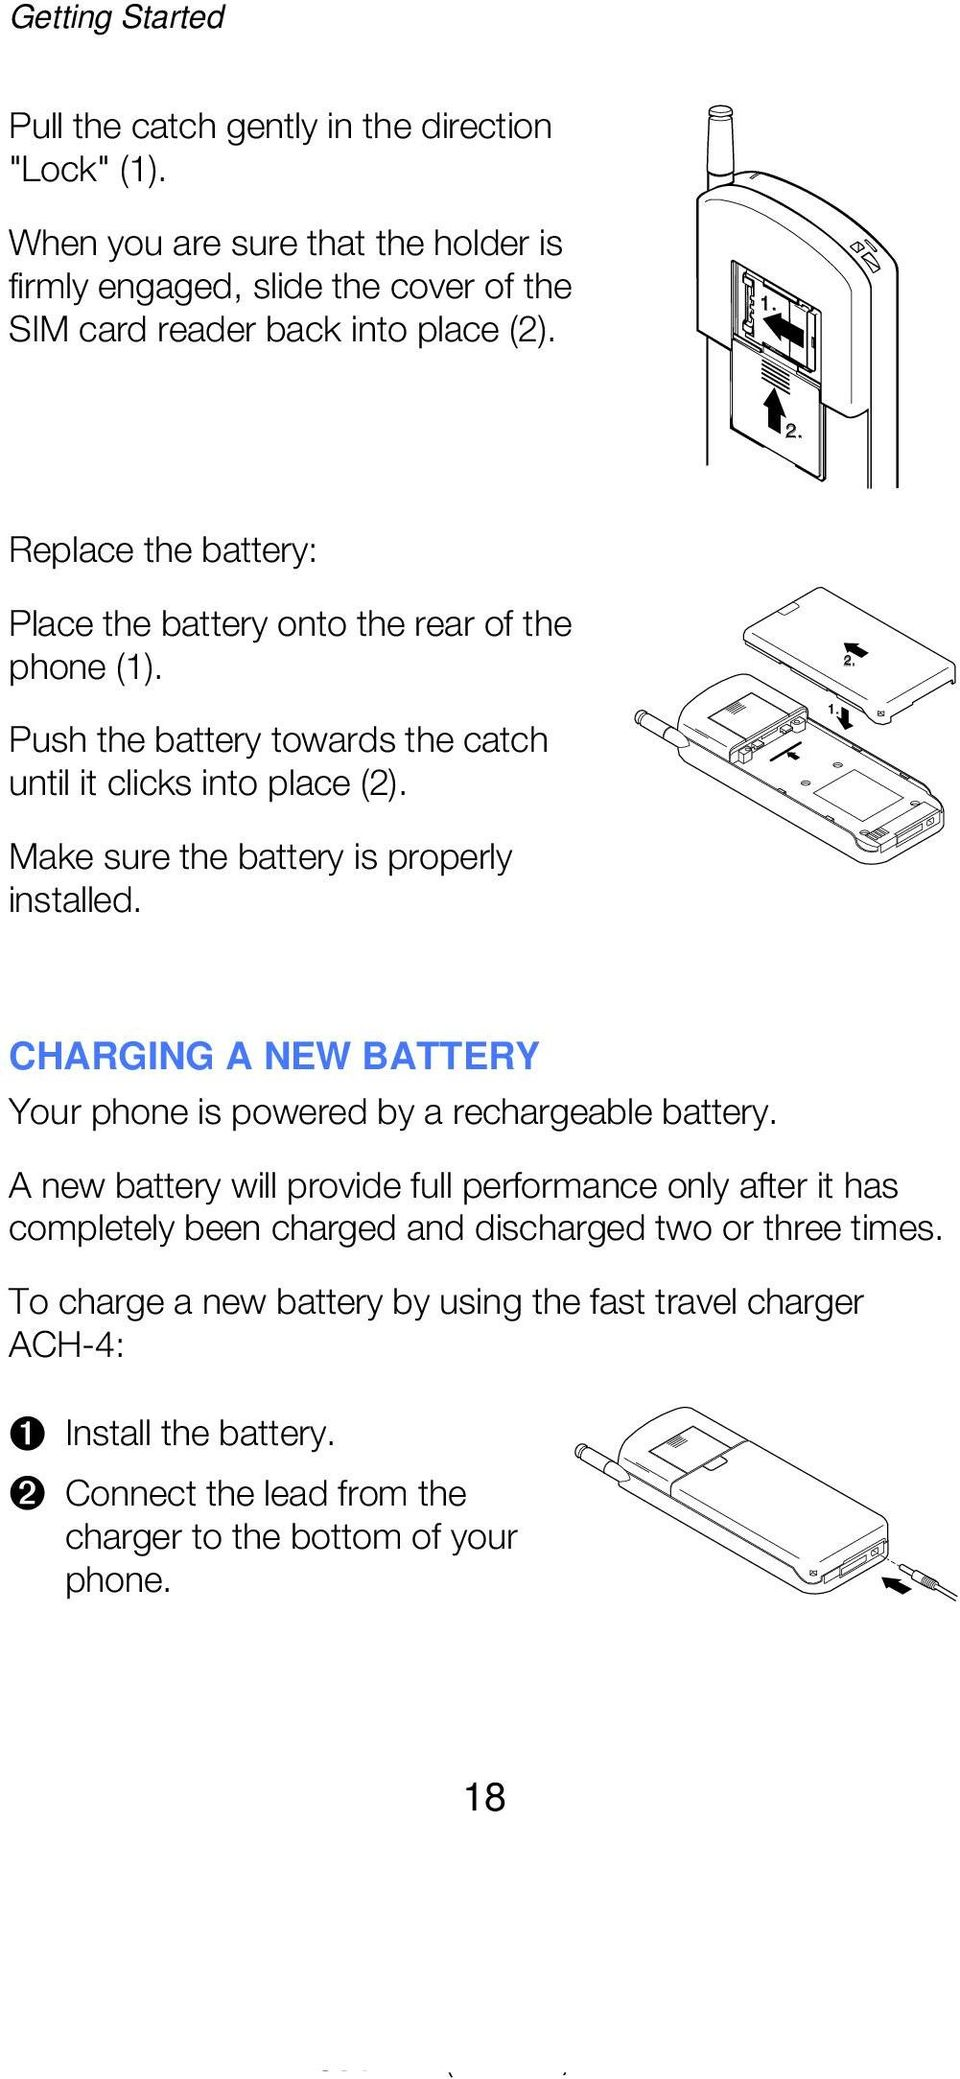 CHARGING A NEW BATTERY Your phone is powered by a rechargeable battery. A new battery will provide full performance only after it has completely been charged and discharged two or three times.